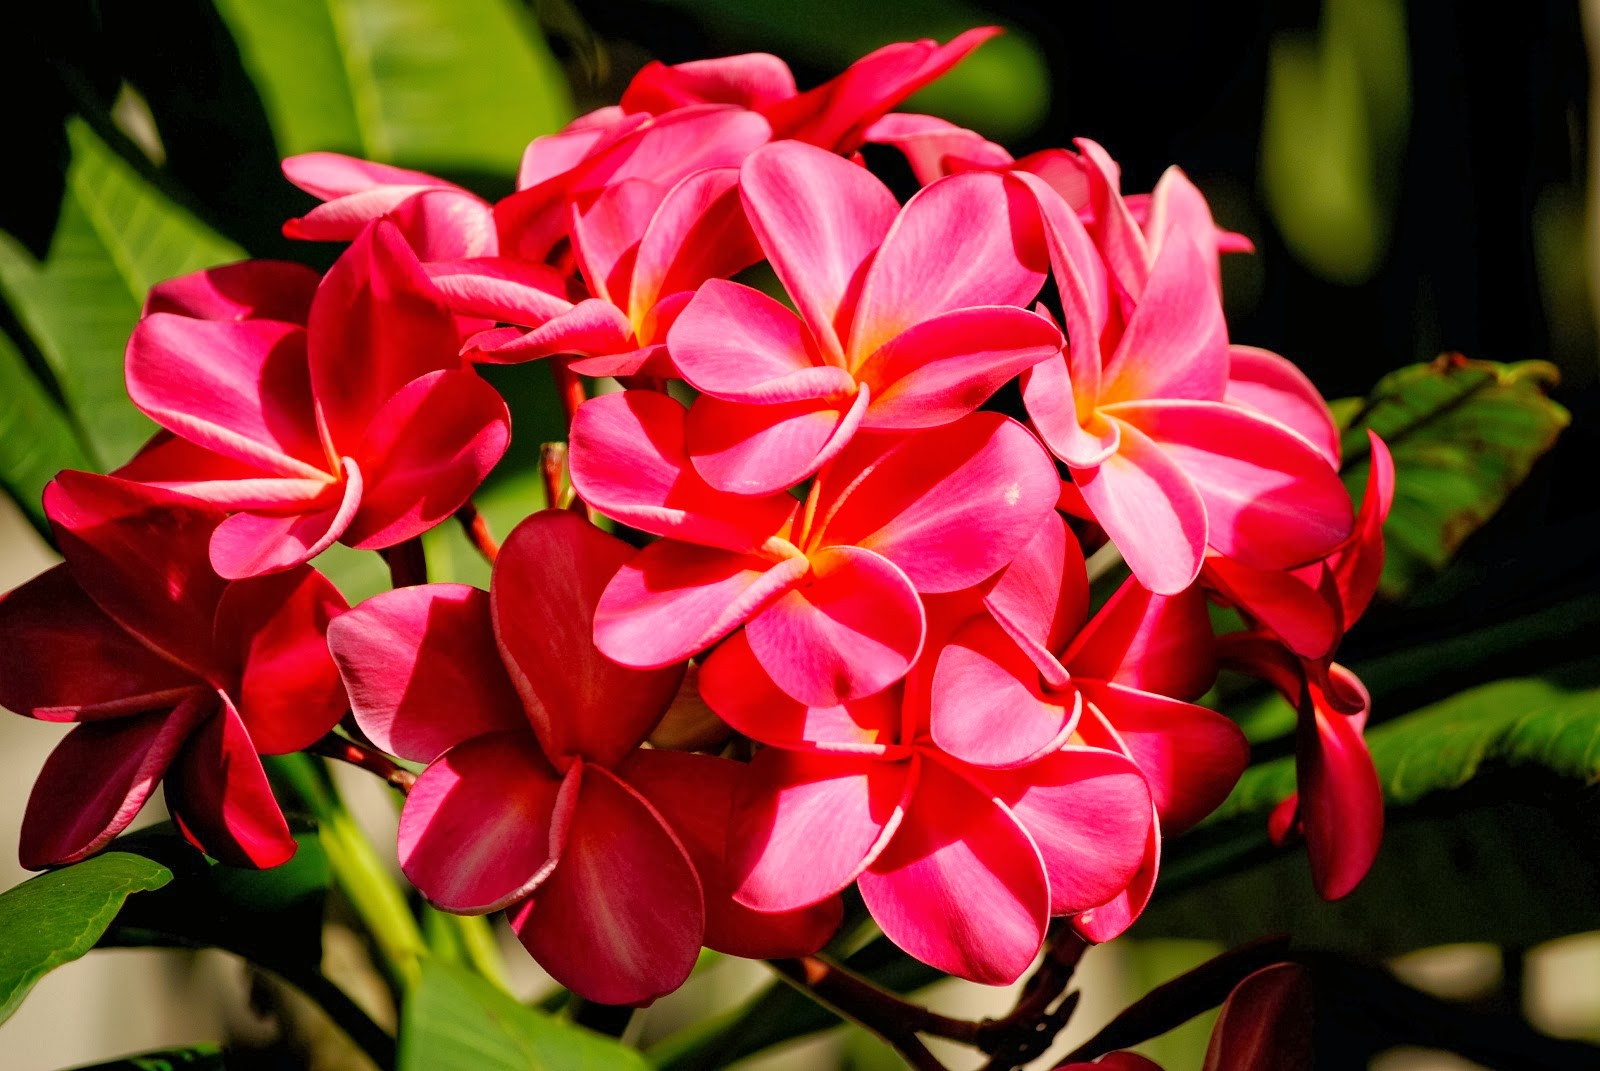 Blok888: Top 10 Most Beautiful Flowers in the world 2